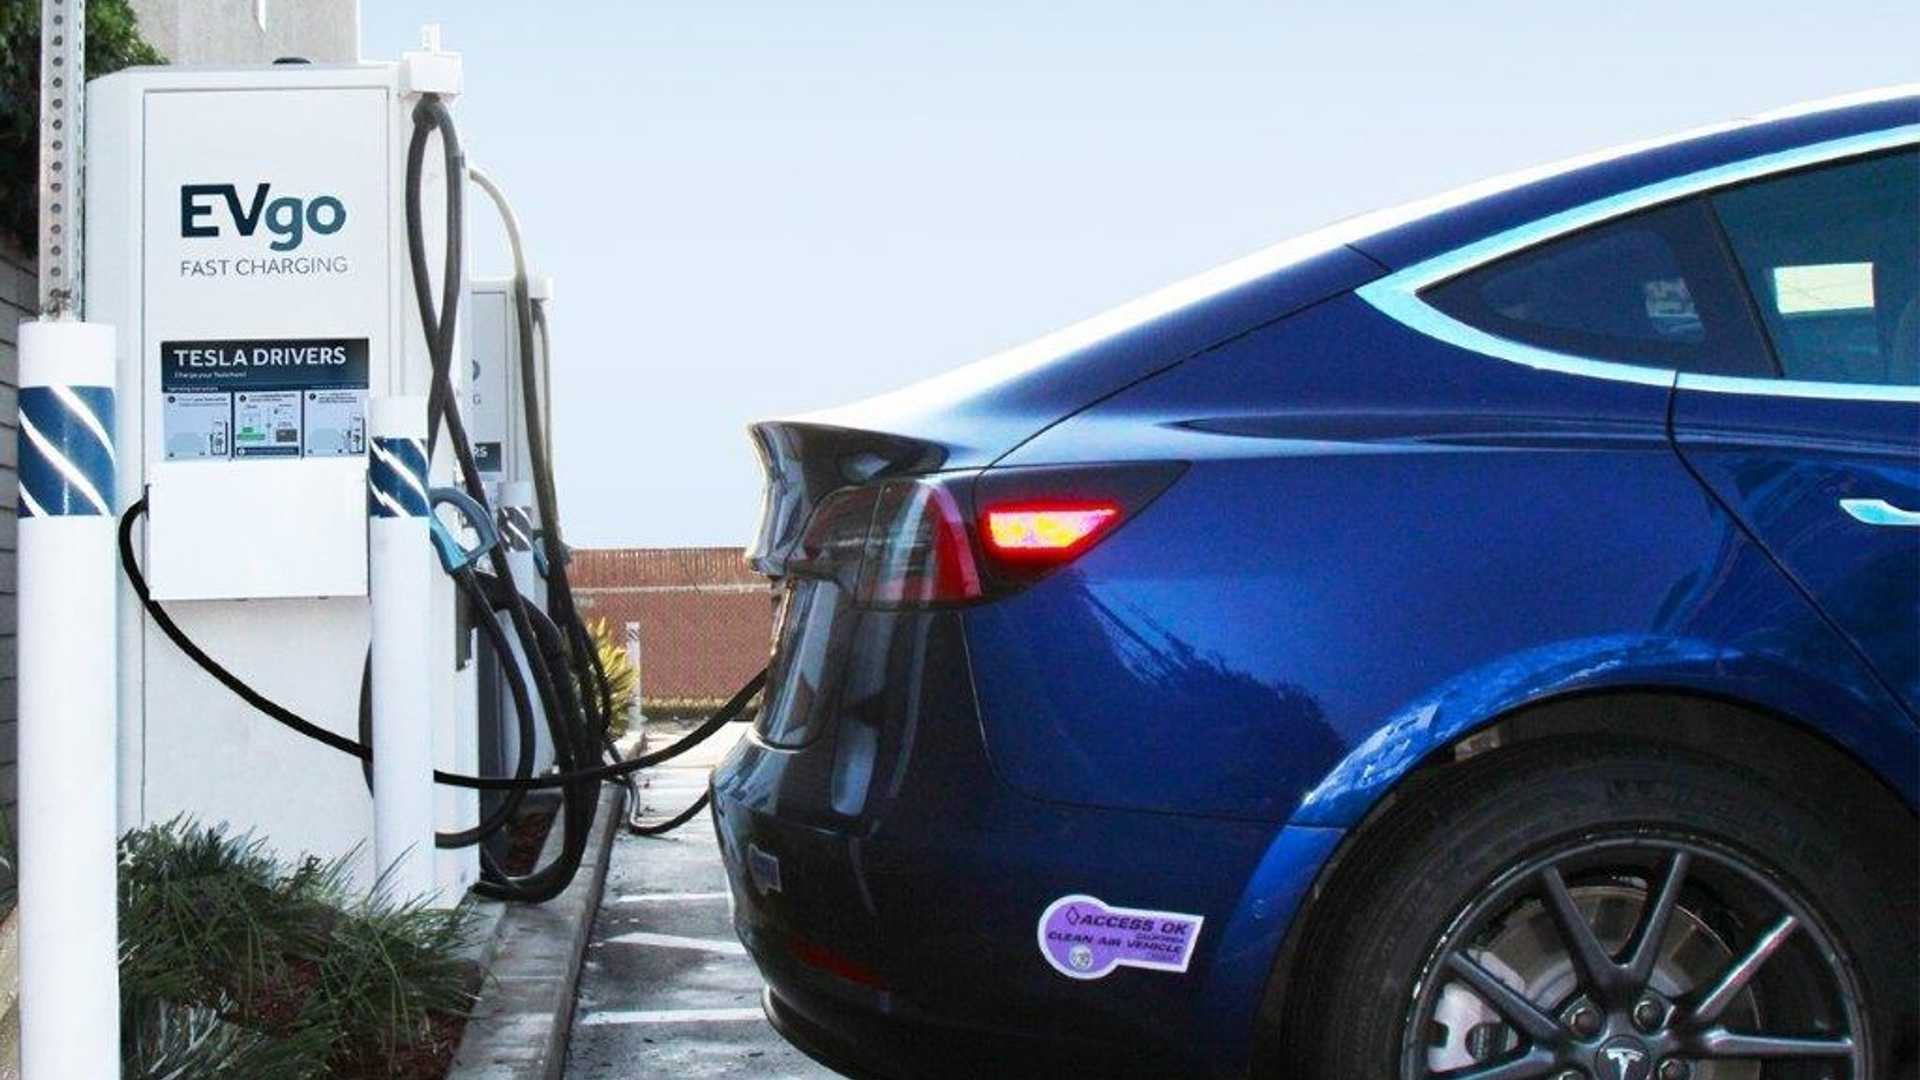 EVgo To Add Tesla Connectors At Fast Charging Stations